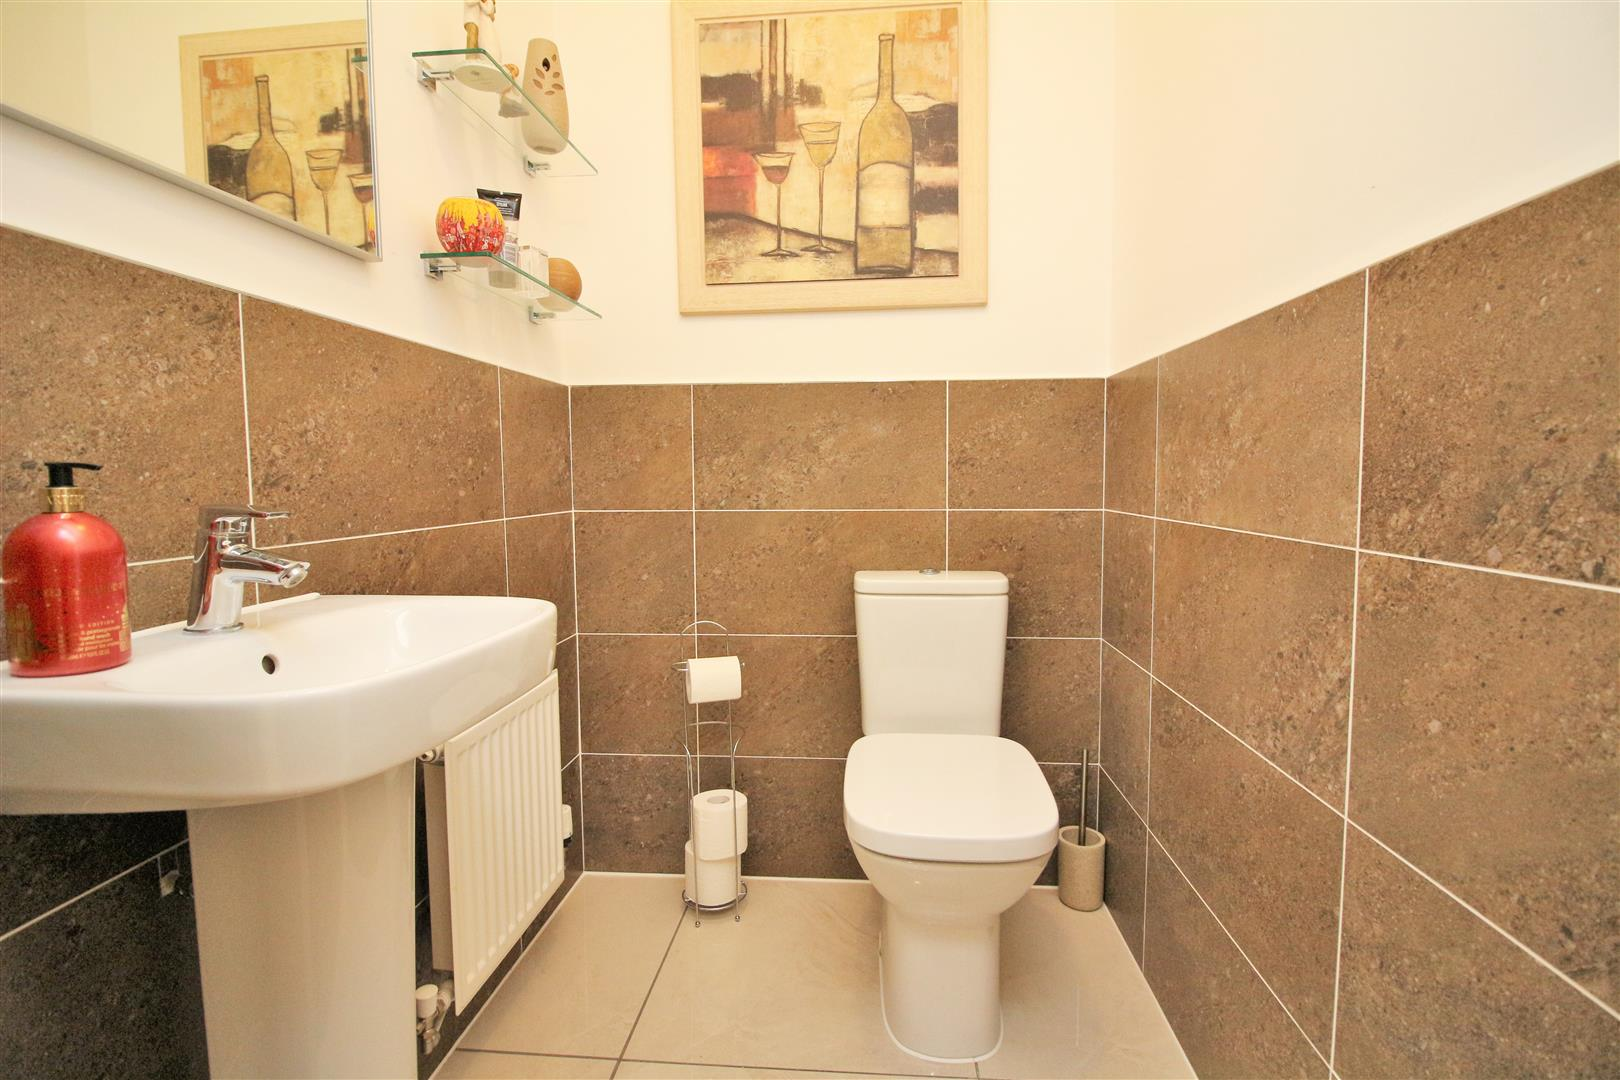 4 bed to rent in Leavesden - (Property Image 9)